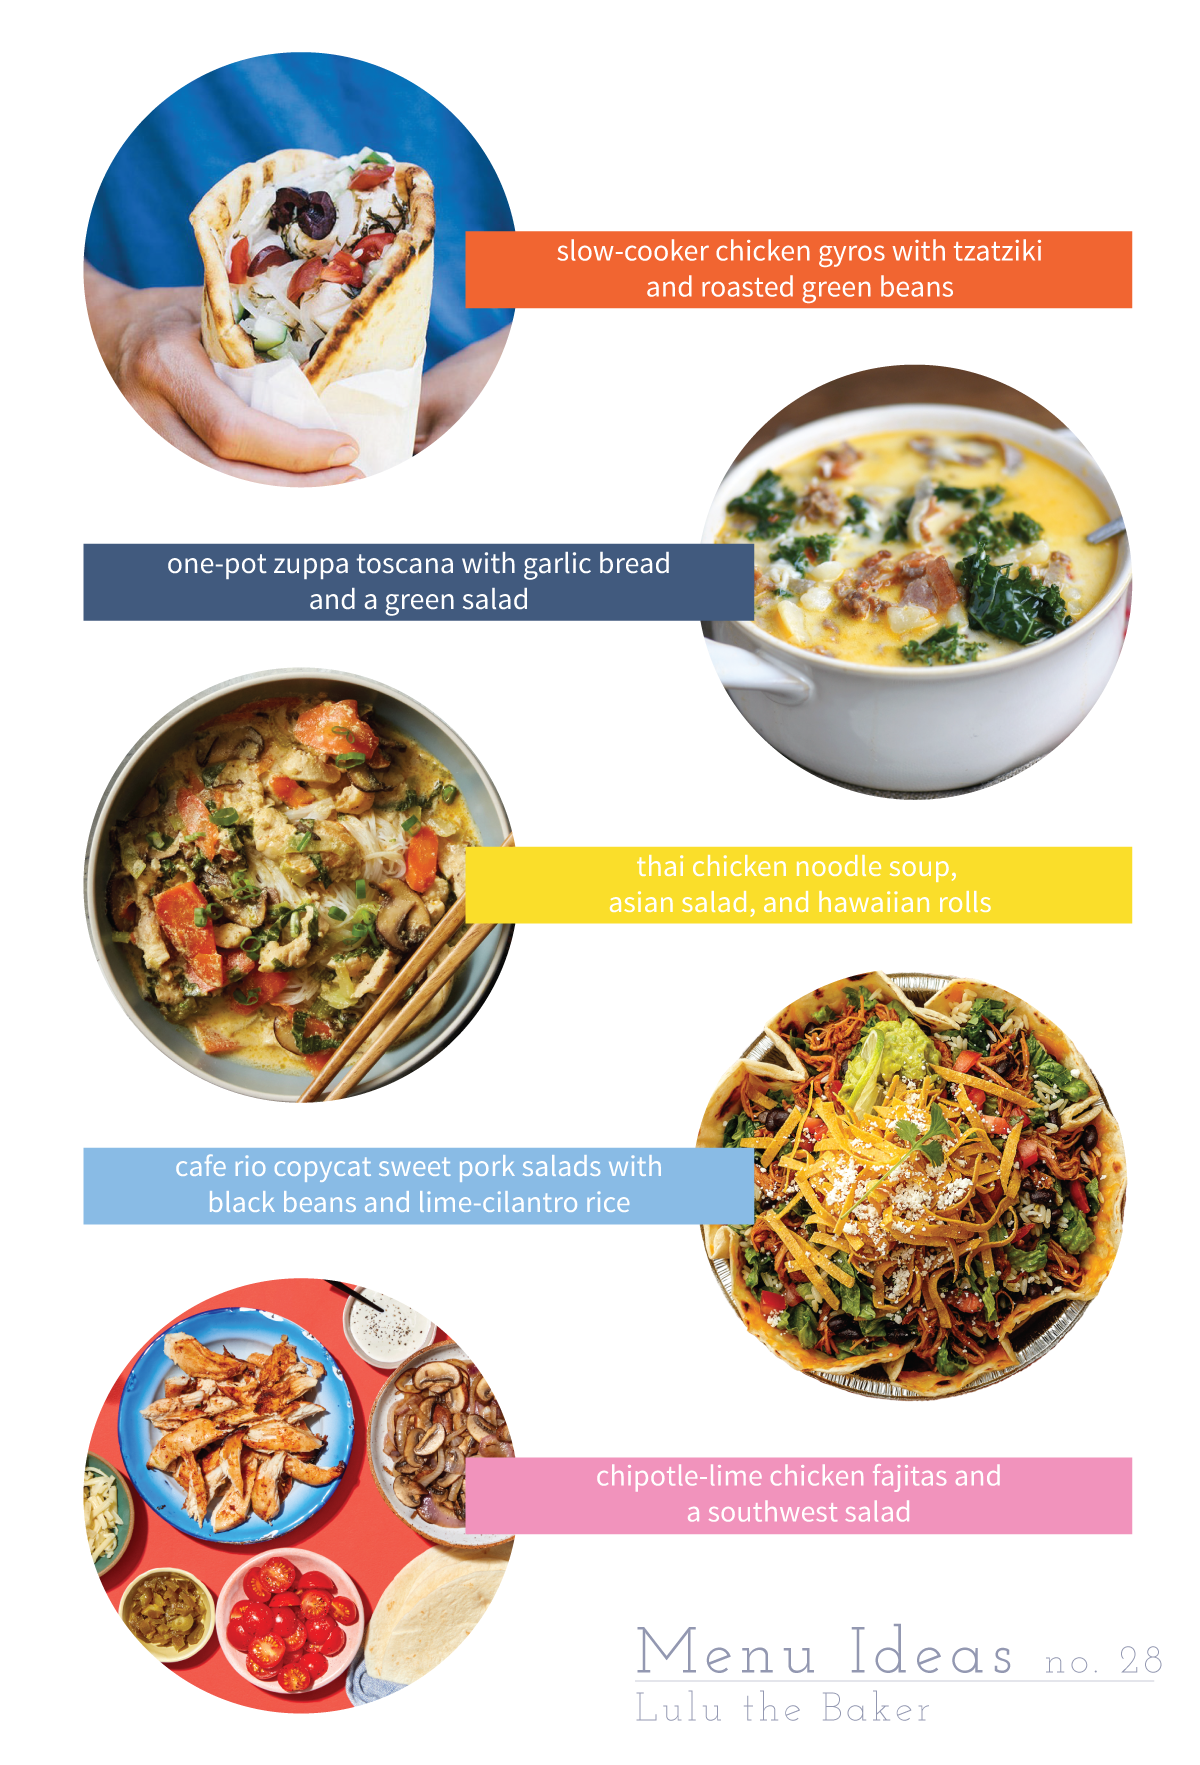 I'm sharing 5 of my favorite menu ideas to help you plan delicious, easy weeknight dinners for your family this week!